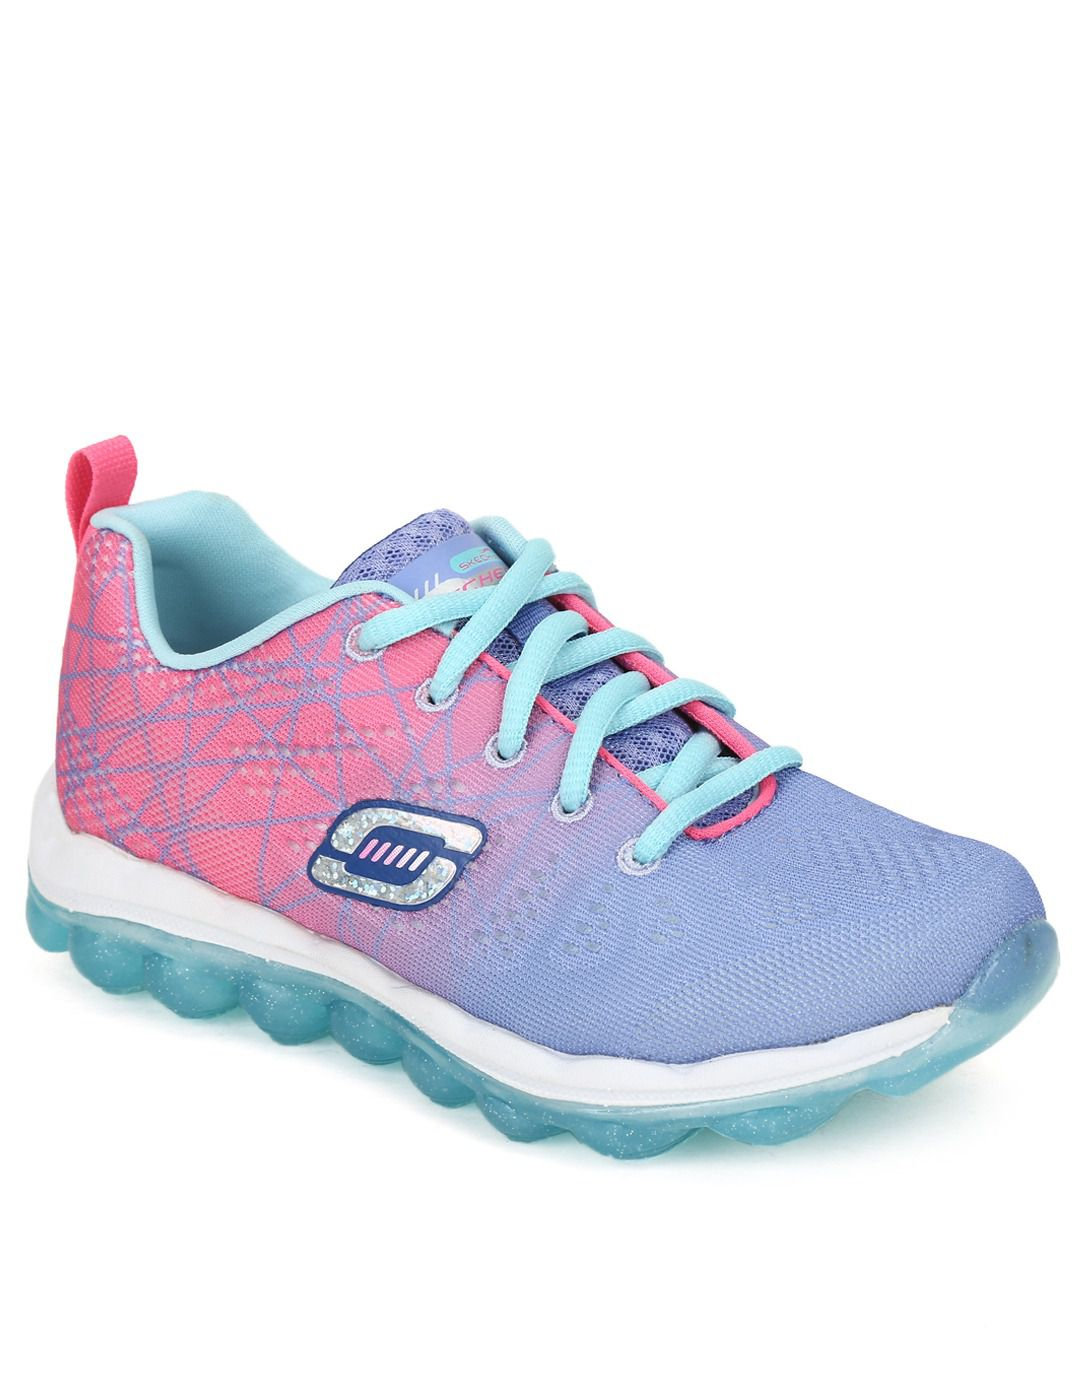 skechers shoes online india